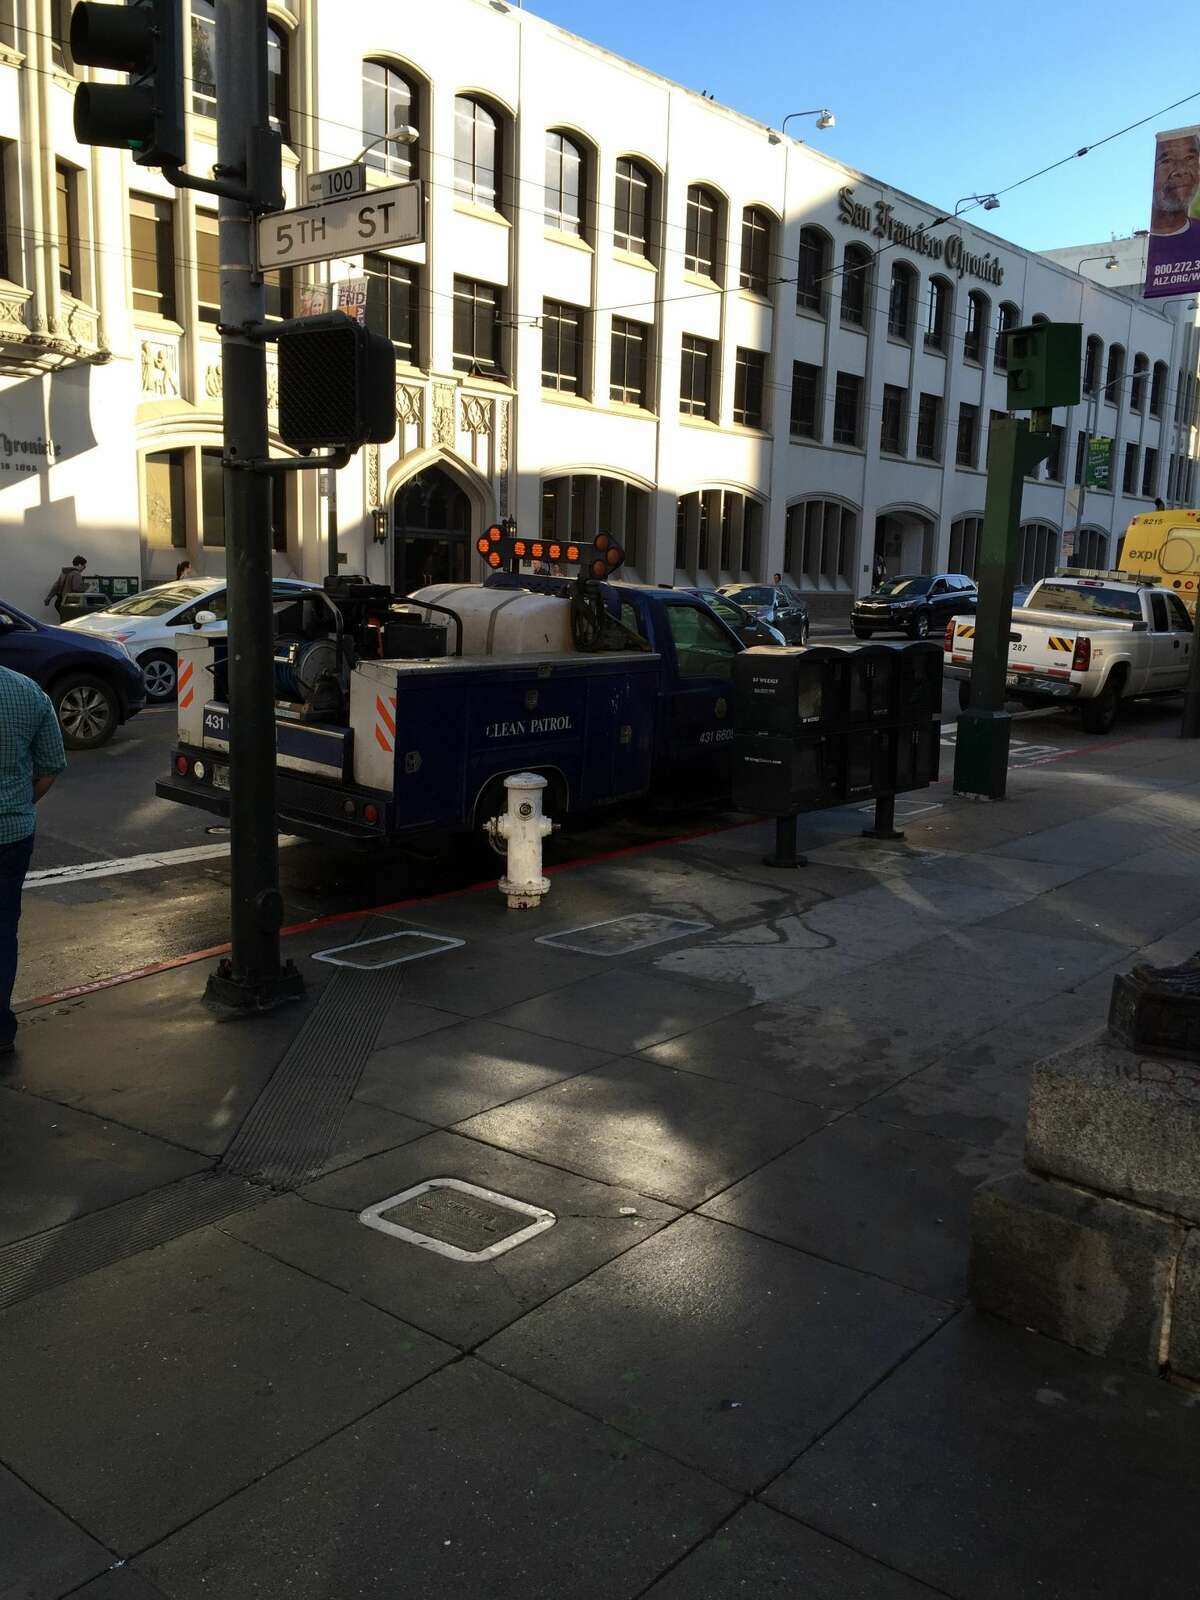 A San Francisco Clean Patrol truck finishes hosing down the sidewalk across the street from the San Francisco Chronicle and SFGATE building after tweets of homeless men defecating on the streets go viral.